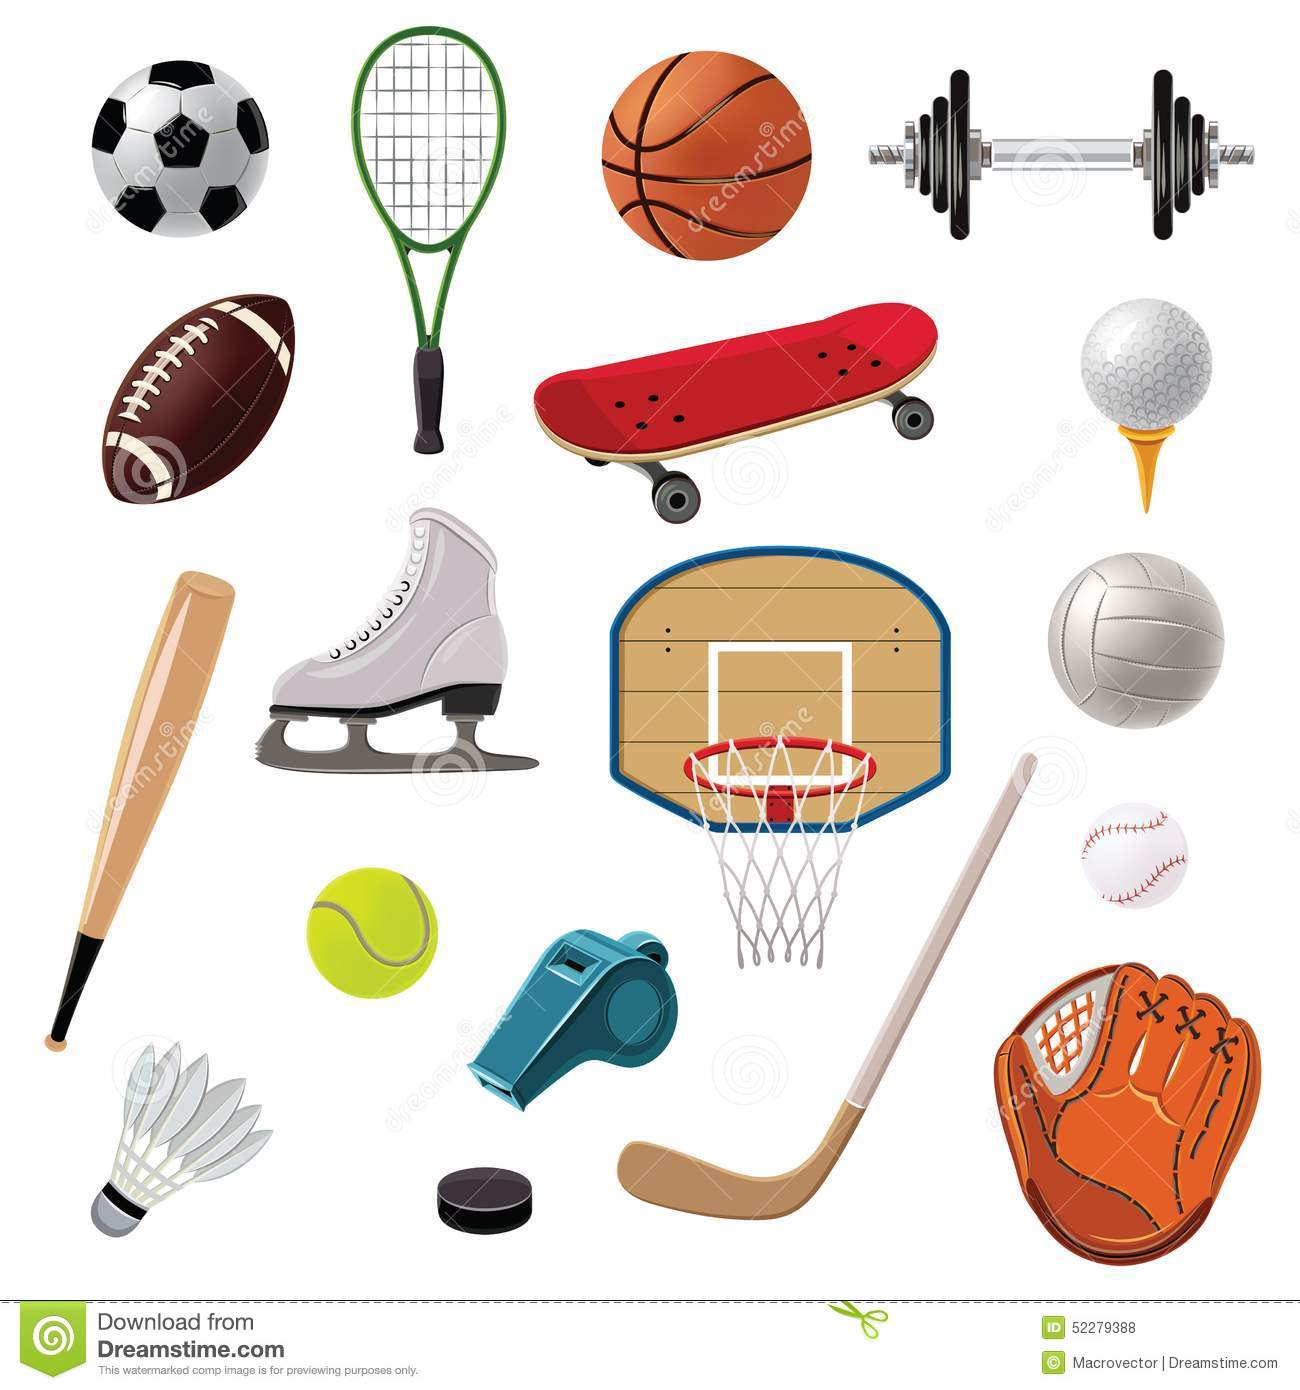 Decorative Sticks For The Home Sports Equipment Set Icons Vector Illustration